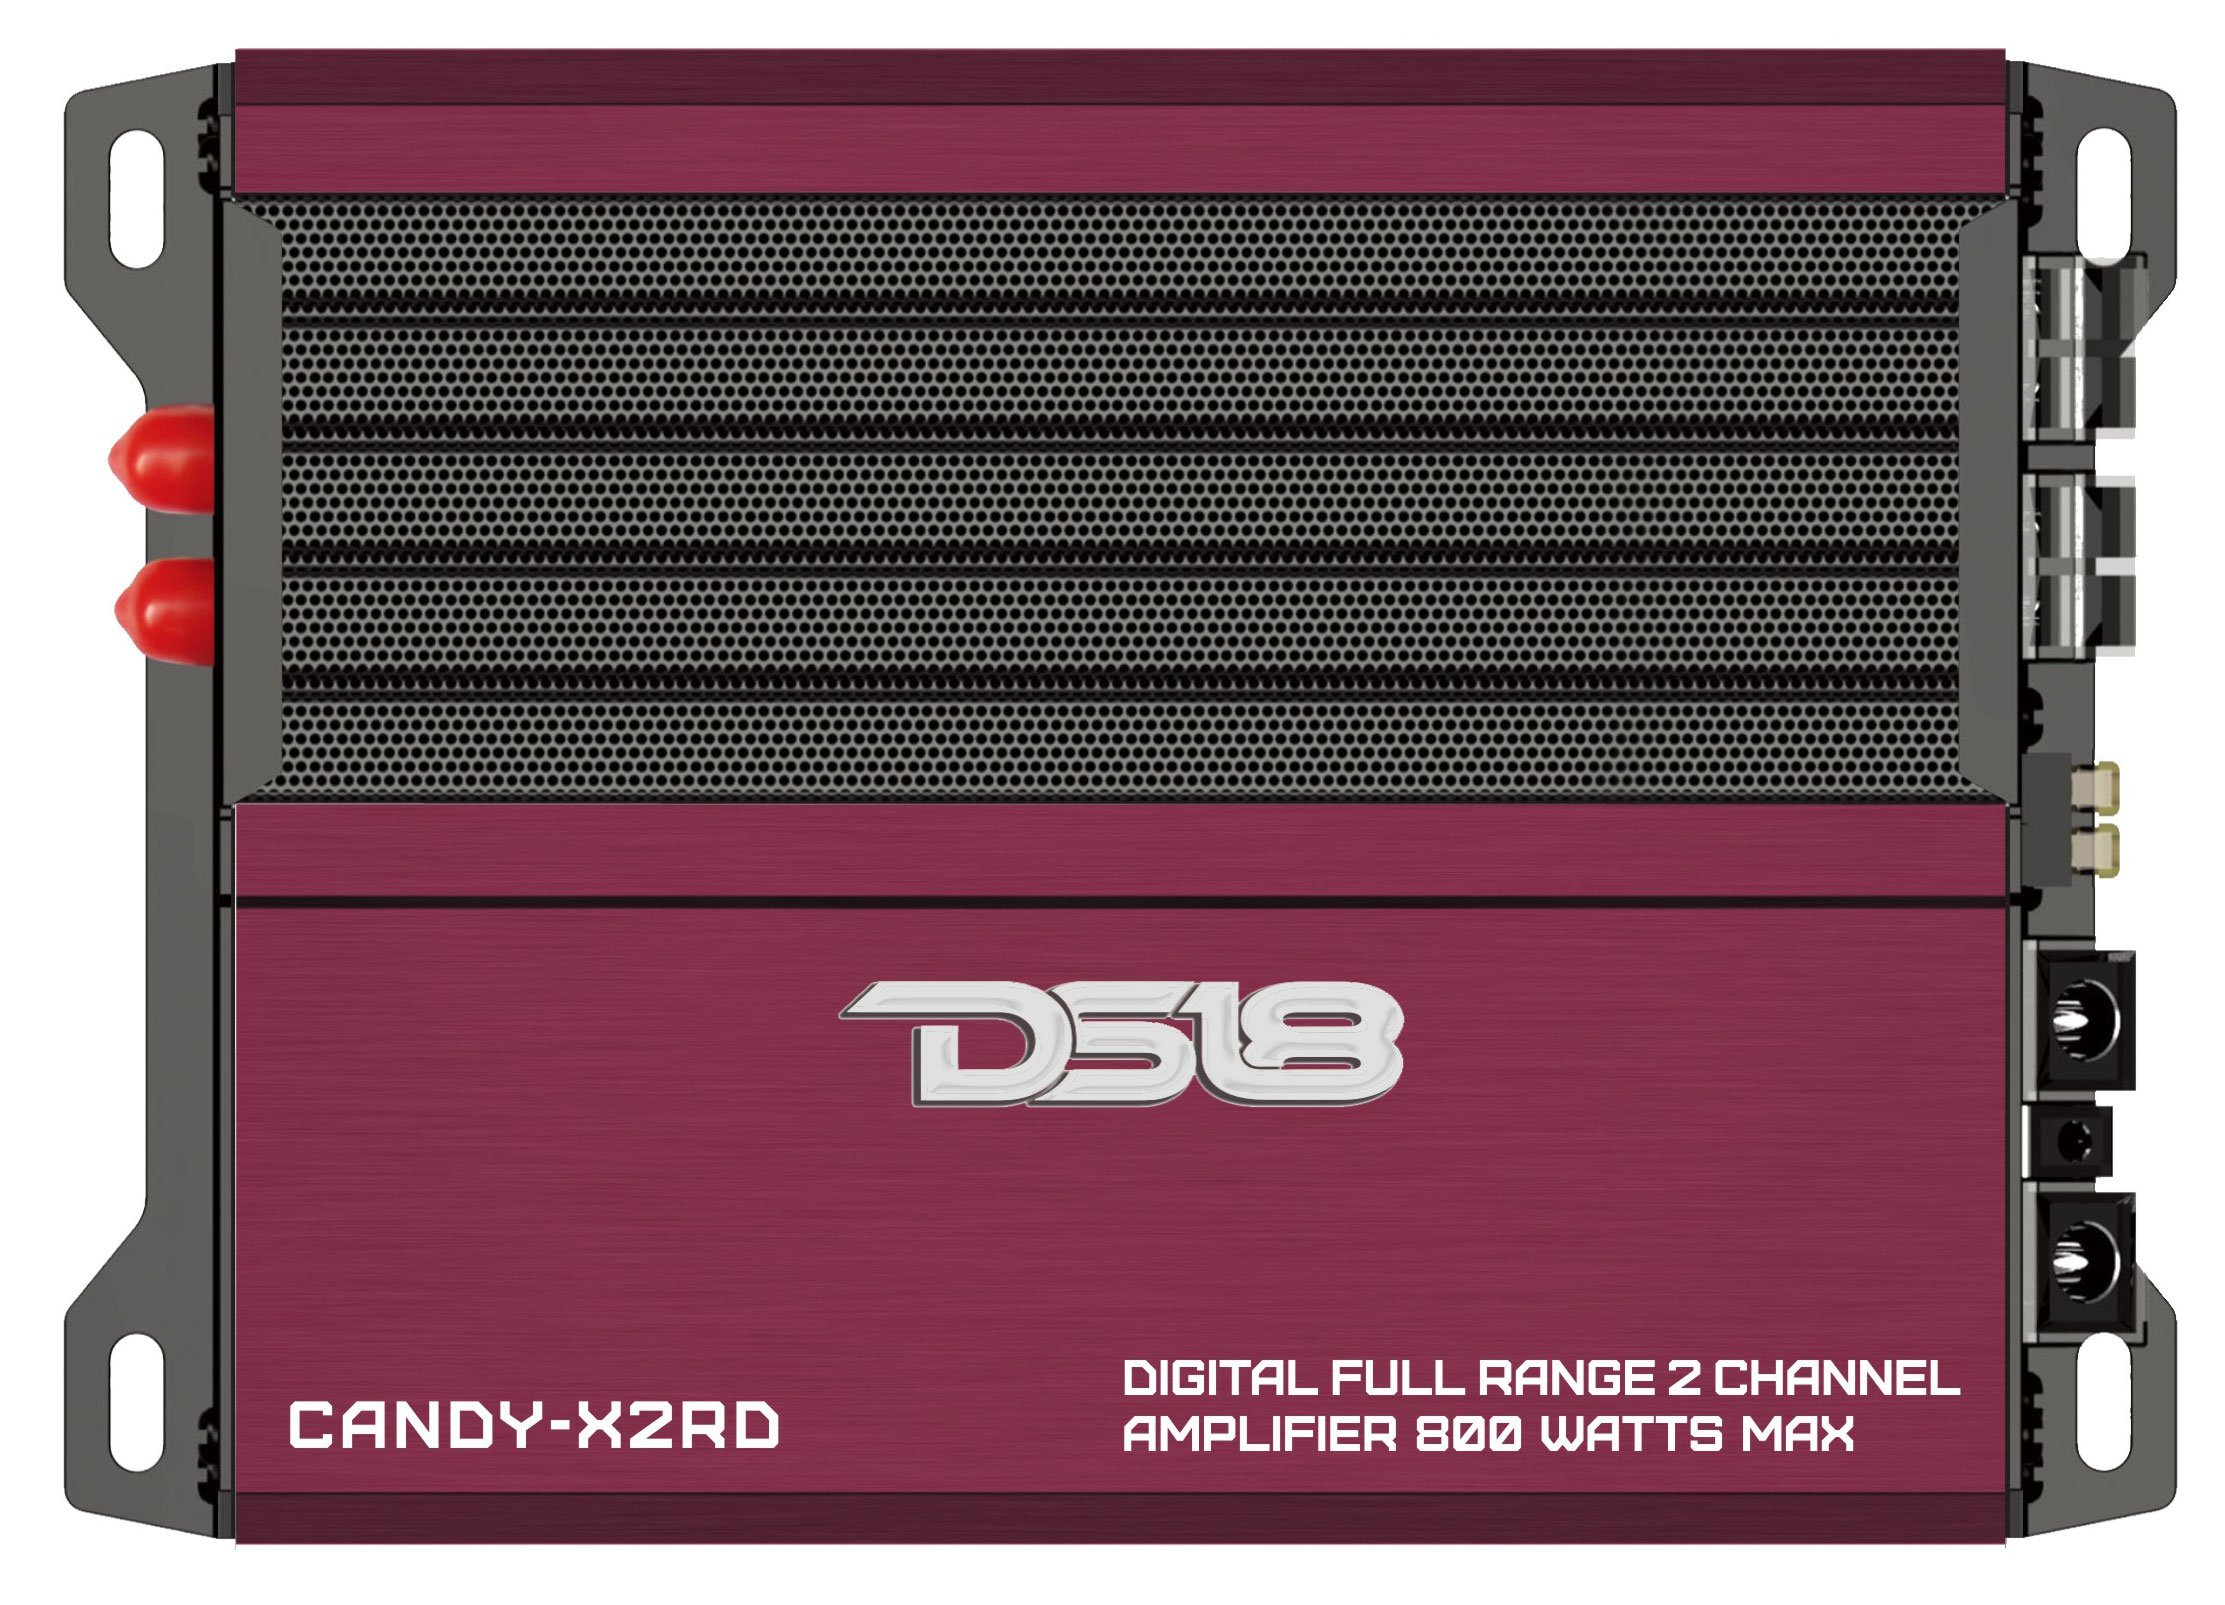 DS18 CANDY-X2RD Red 800 Watts Max Digital Full Range 2 Channel Class D Amplifier